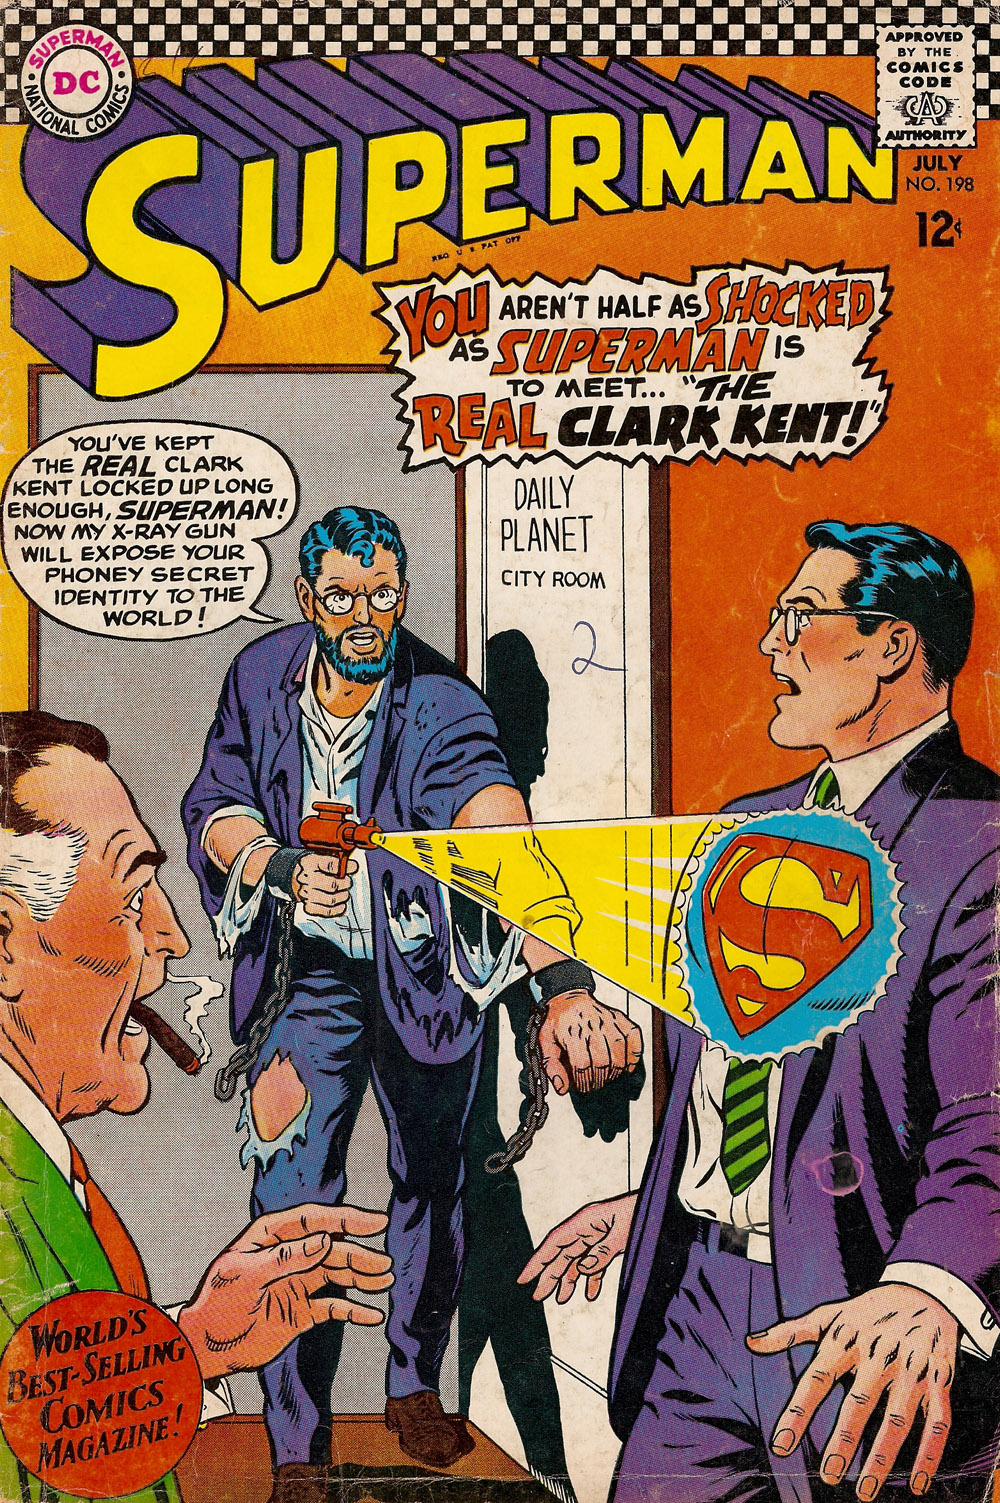 [Image: Superman-198.jpg]